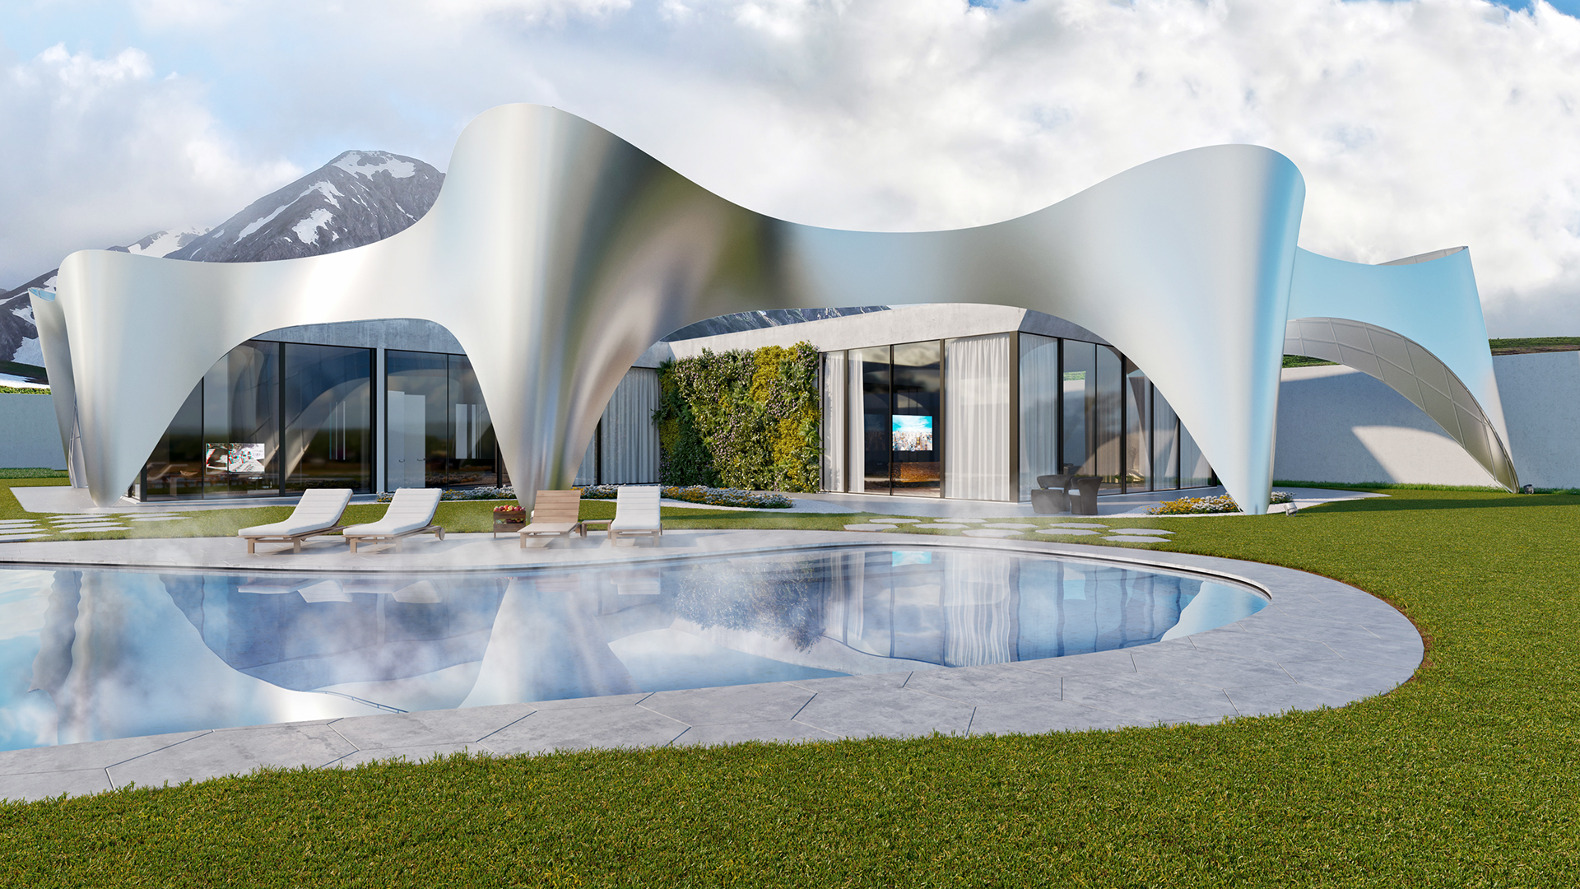 Beautiful Villa In Alps Mimics The Mountains With Glimmering Arches That Provide  Strategically Shifting Shade